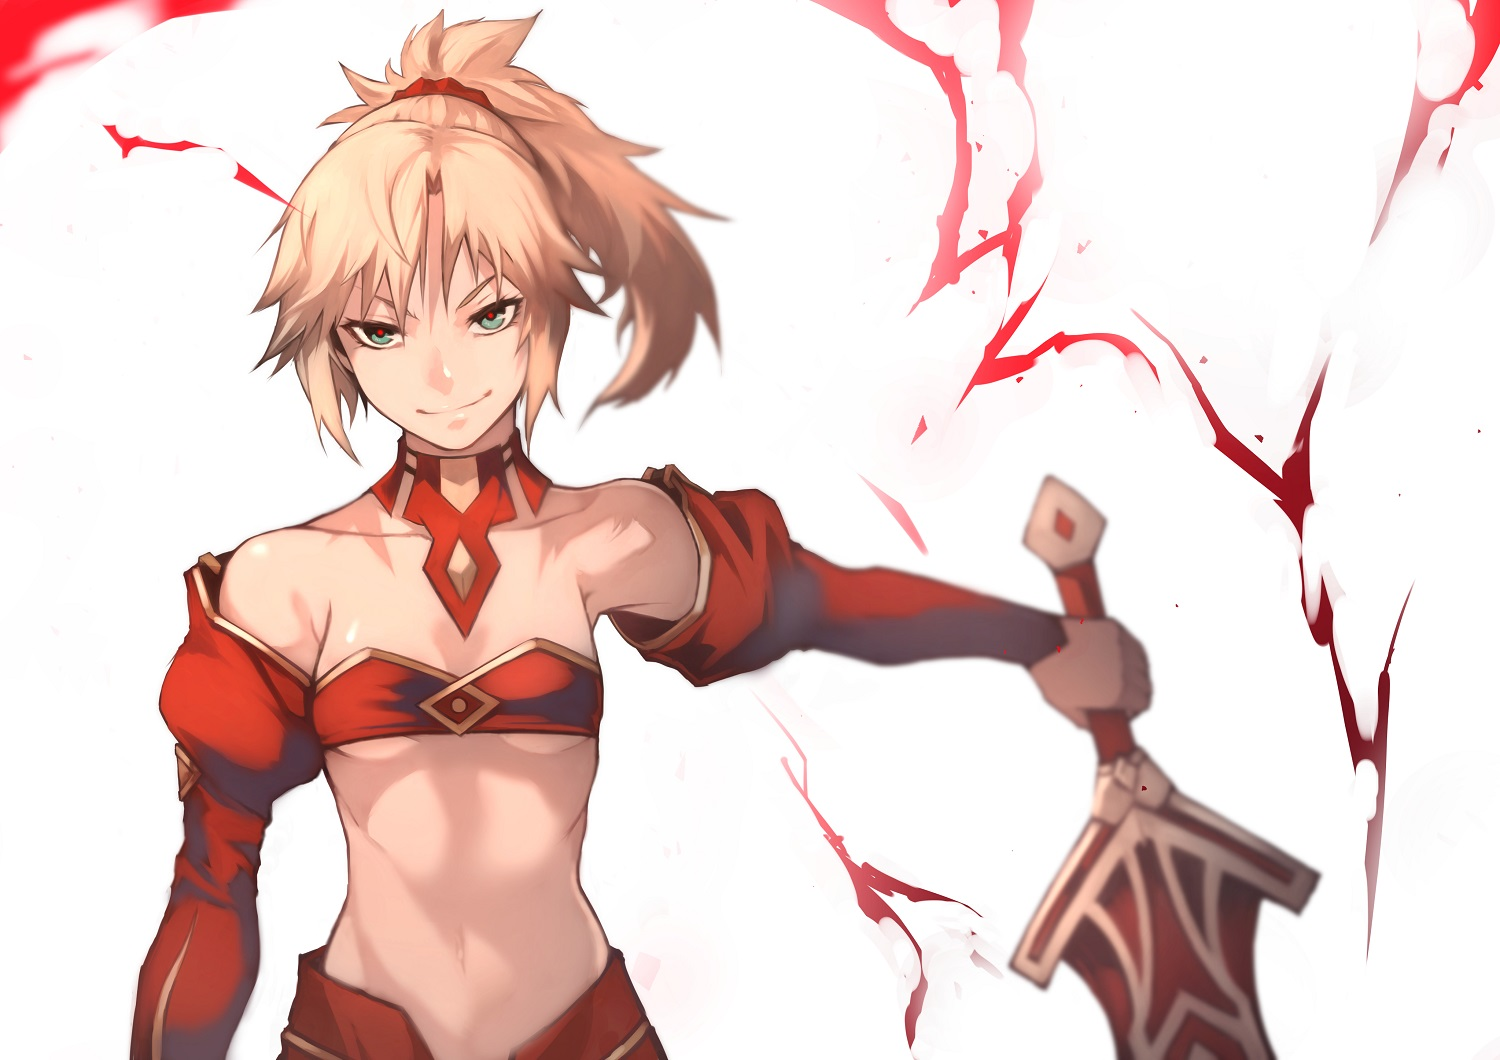 55level blonde_hair fate/grand_order fate_(series) green_eyes long_hair mordred navel ponytail sword underboob weapon white